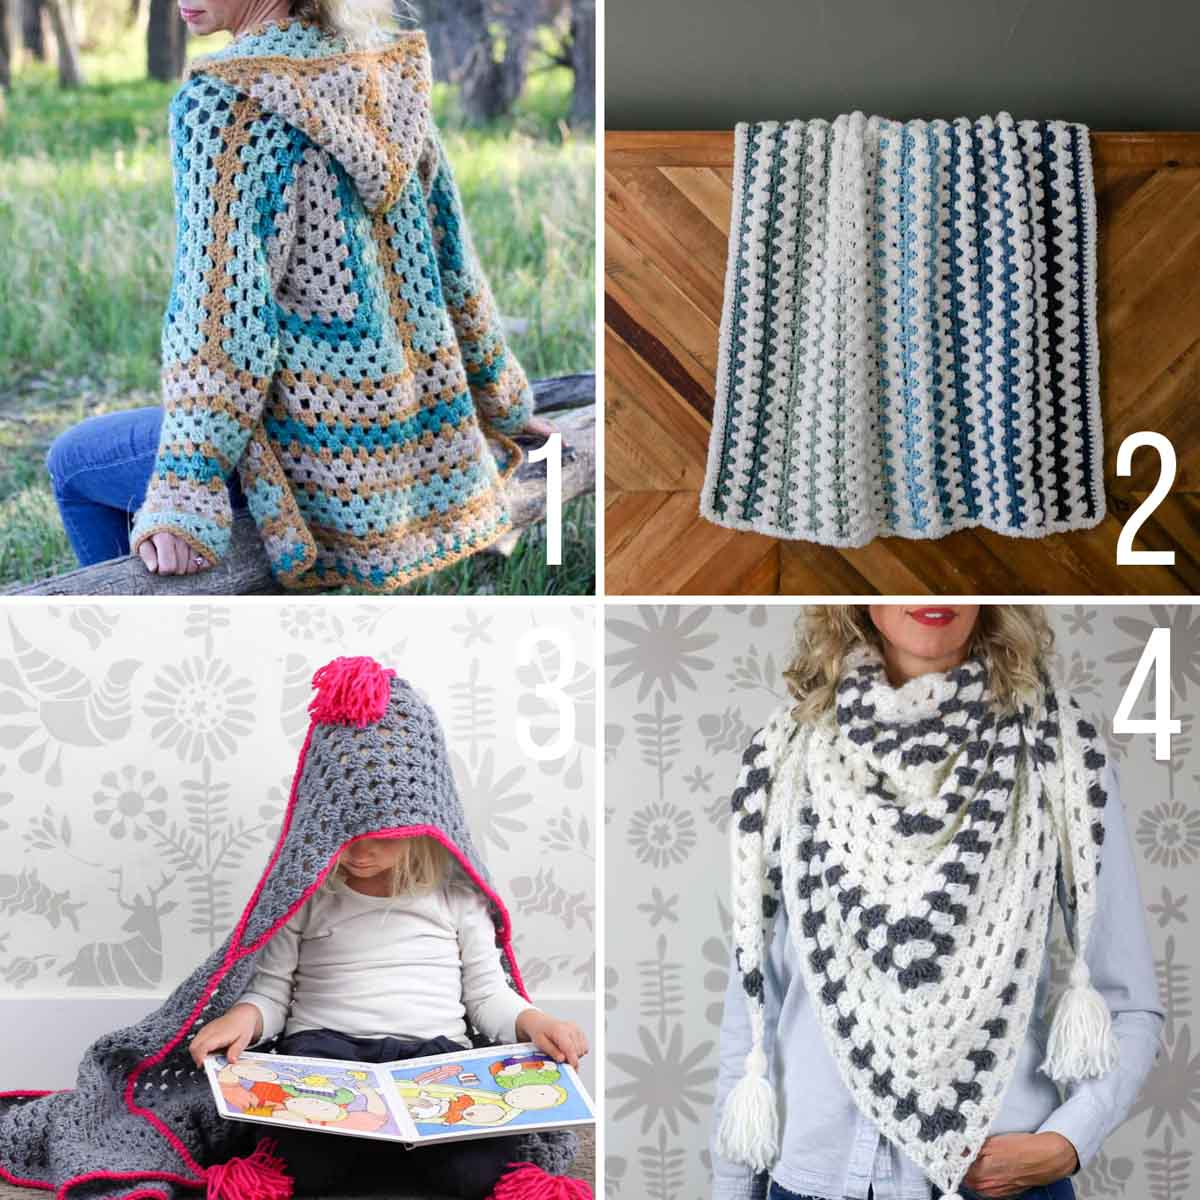 Four granny stitch crochet patterns including a hooded blanket, a cardigan, a shawl and a baby blanket.